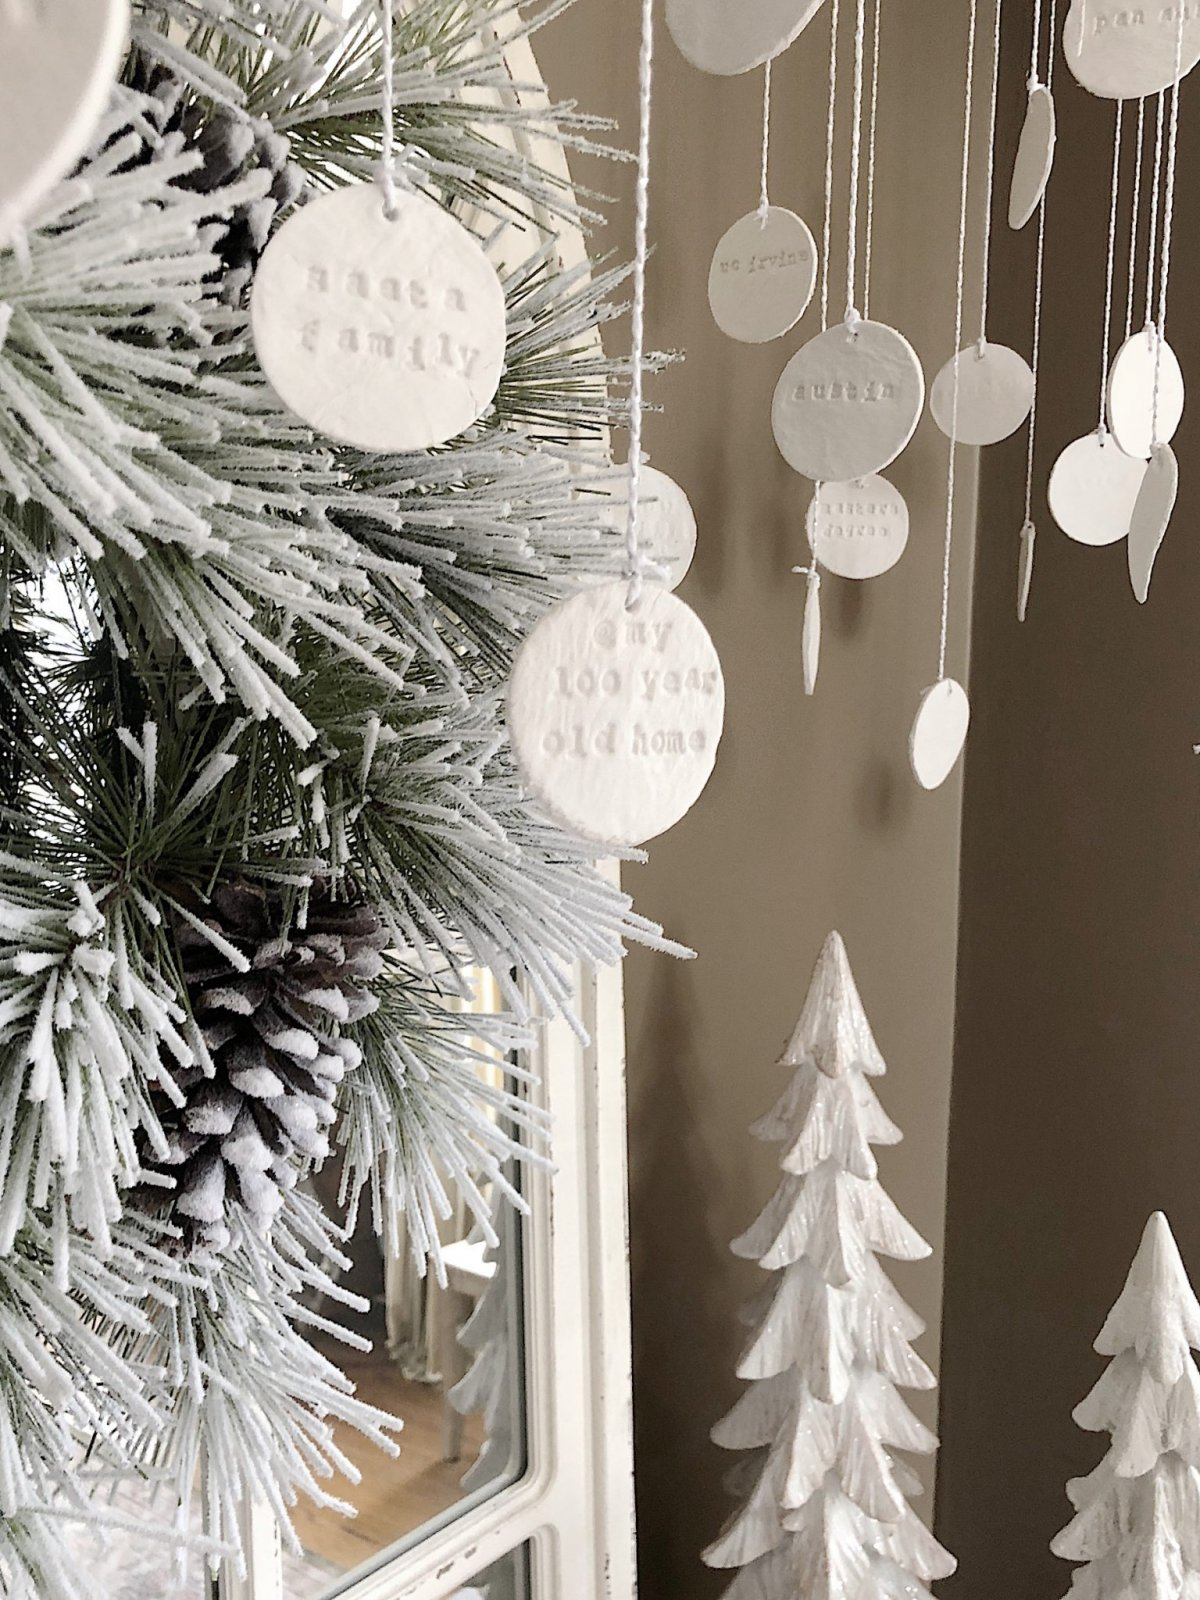 I Am So Excited To Share With You Easy Elegance Wednesdays, Where We Celebrate Simple Elegant Decor. Today I Am Sharing my experience at decorating our home for the holidays as a first-year blogger.